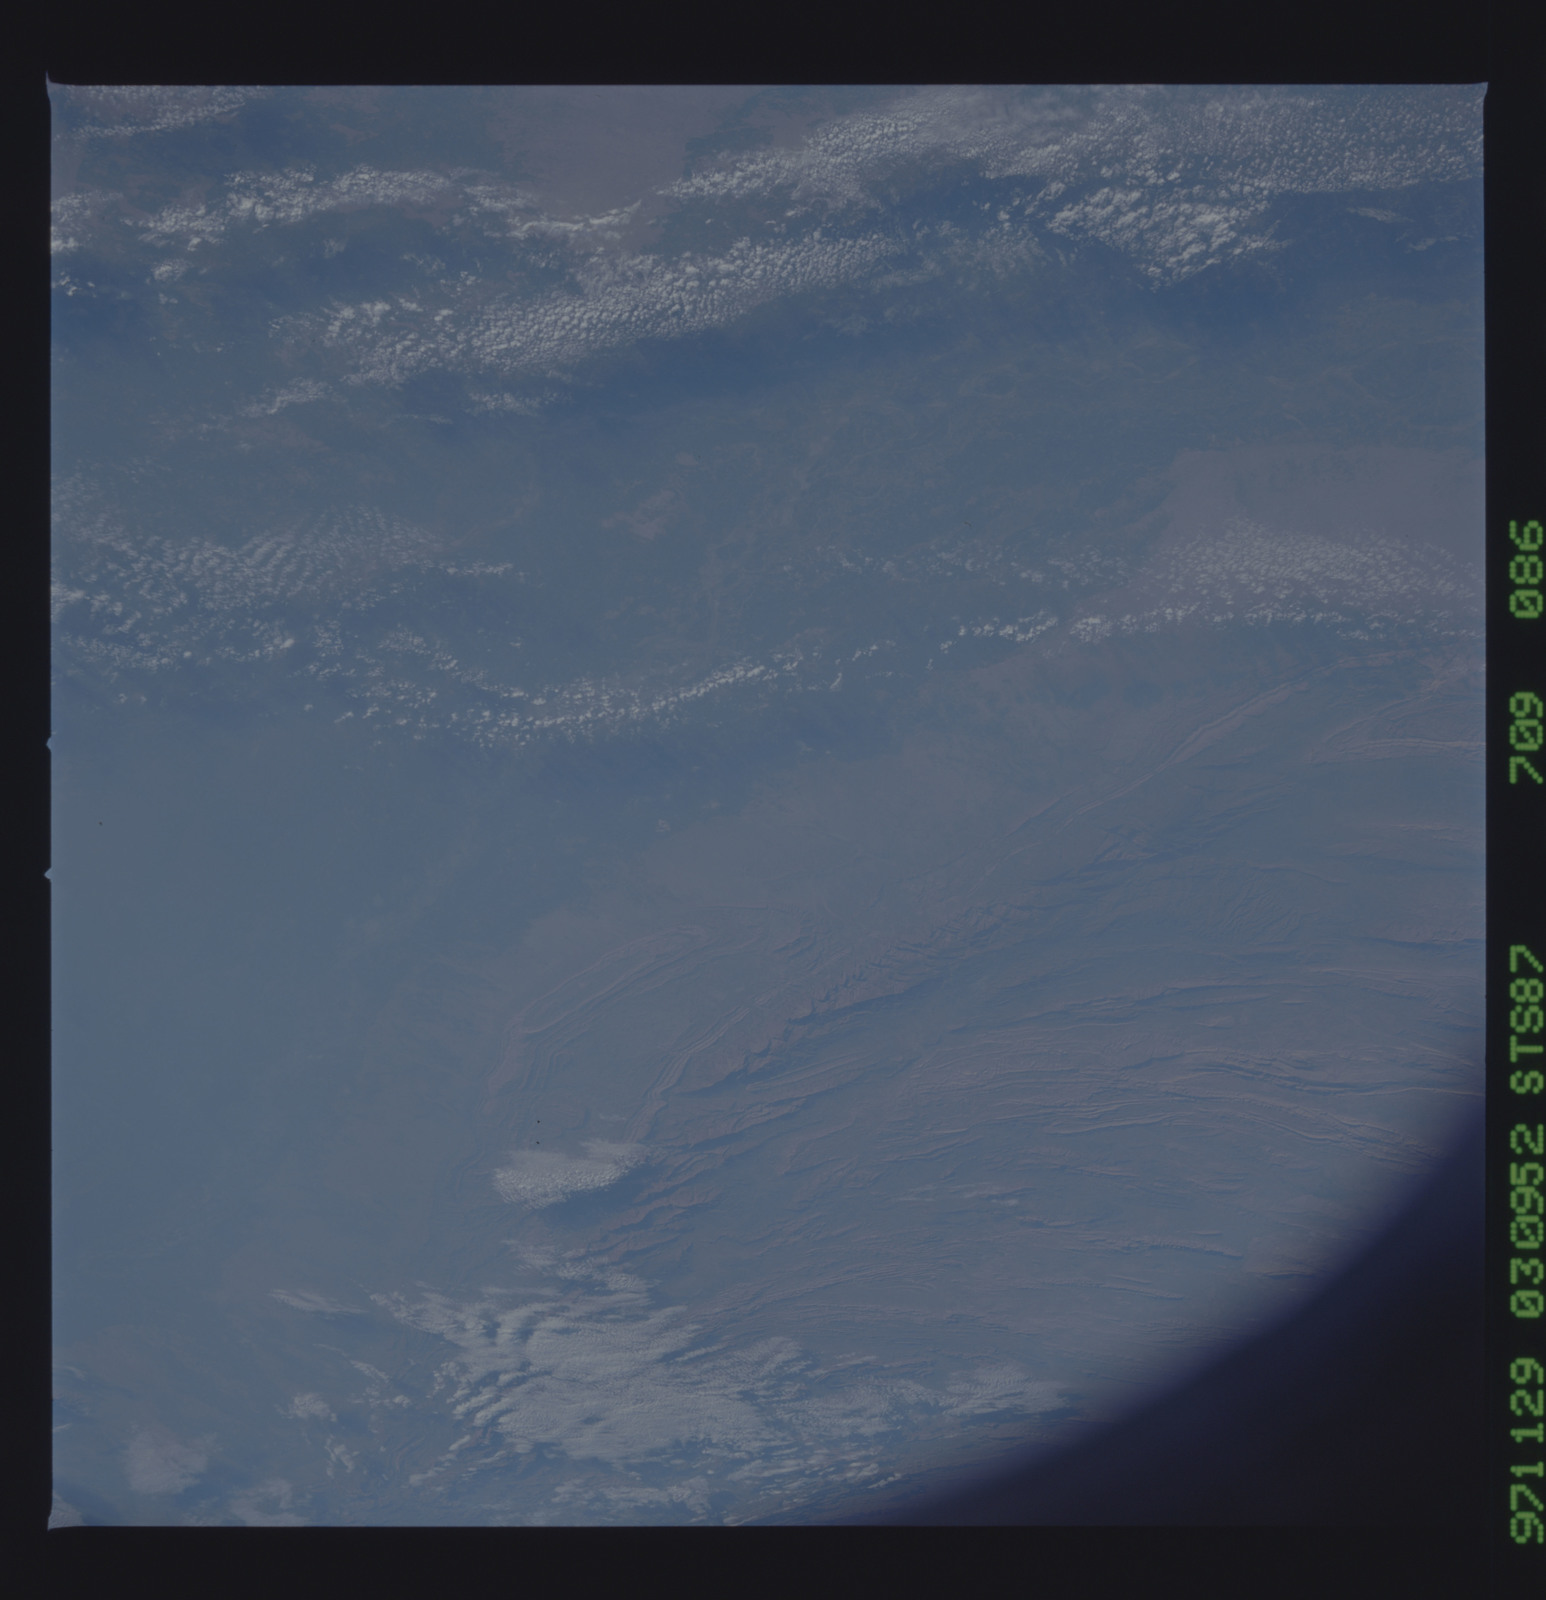 STS087-709-086 - STS-087 - Earth observations taken from shuttle orbiter Columbia during STS-87 mission